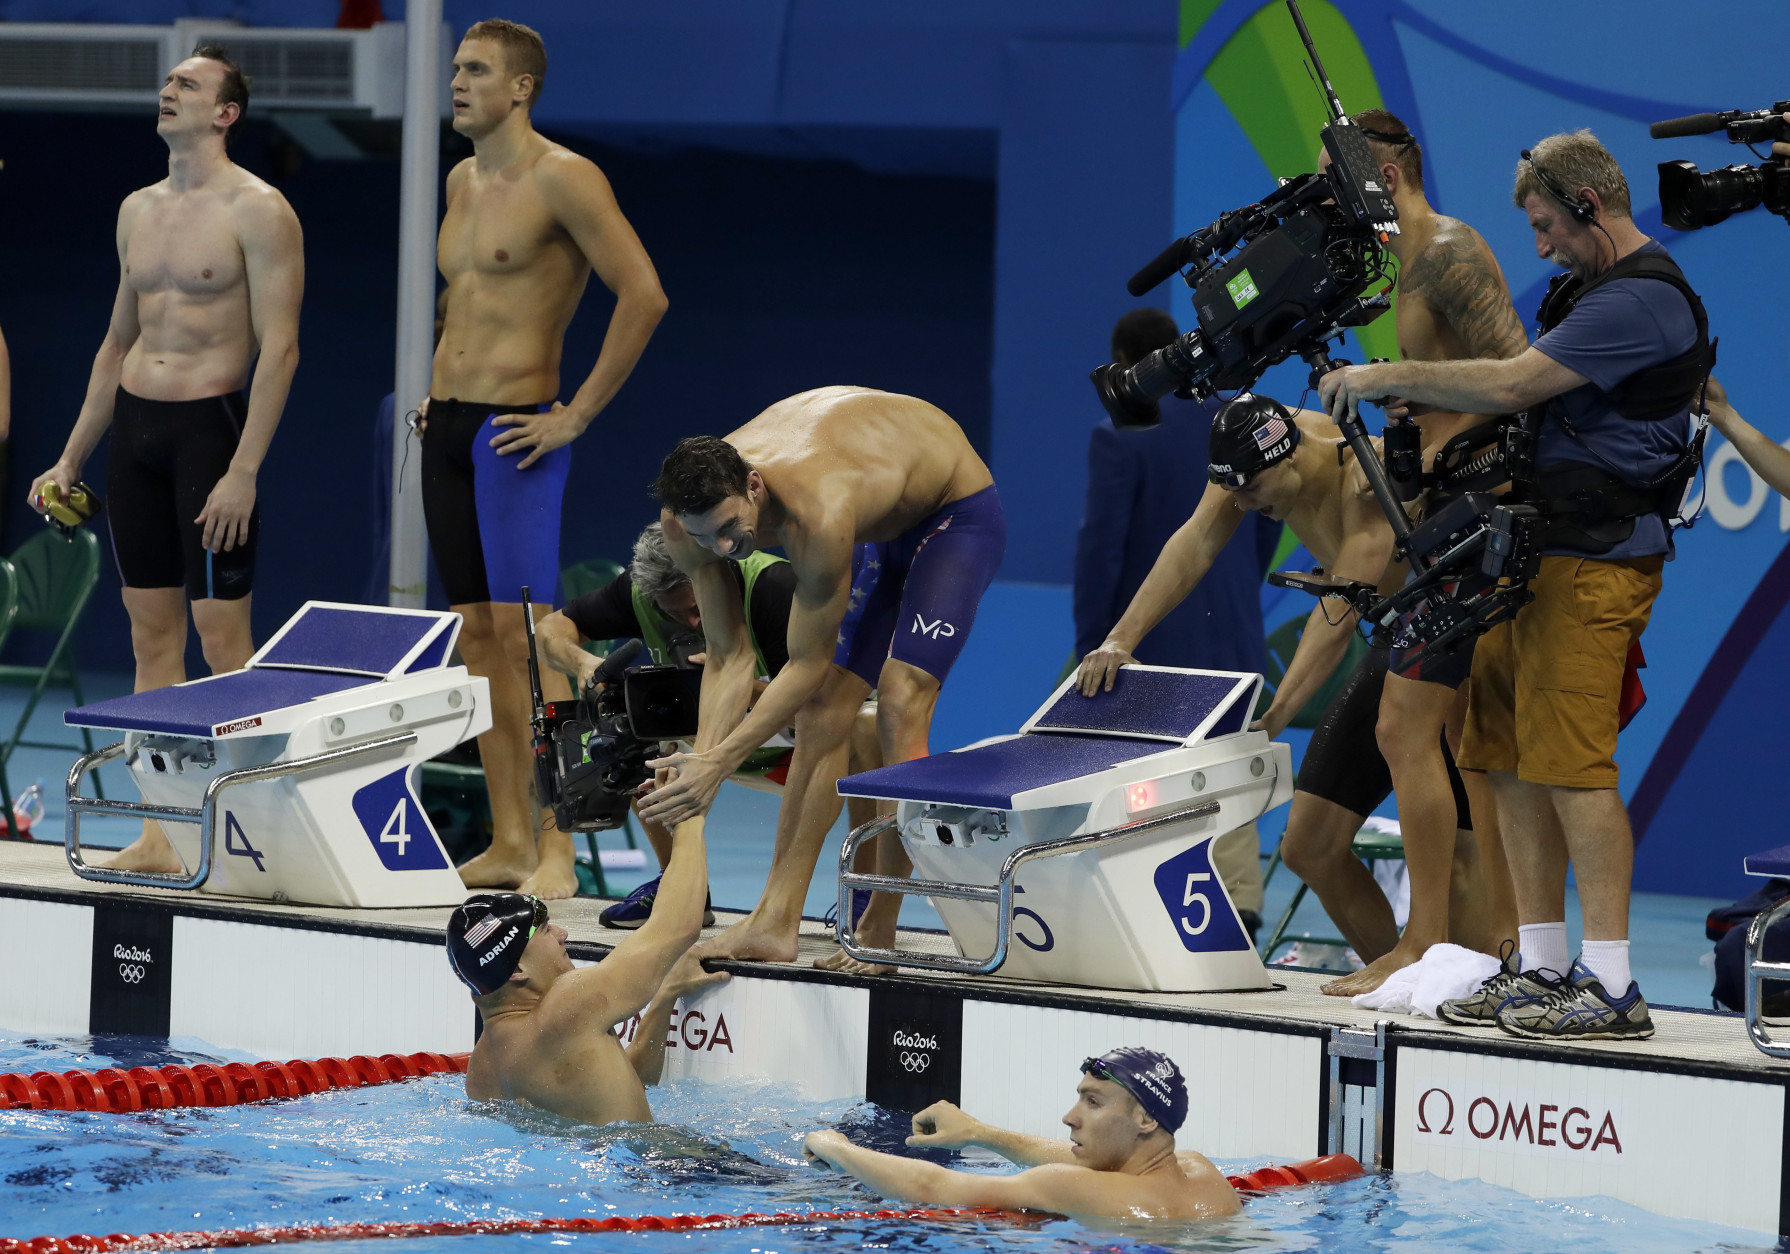 United States' Michael Phelps greets United States' Nathan Adrian after winning the final of the men's 4x100-meter freestyle relay during the swimming competitions at the 2016 Summer Olympics, Sunday, Aug. 7, 2016, in Rio de Janeiro, Brazil. (AP Photo/Matt Slocum)